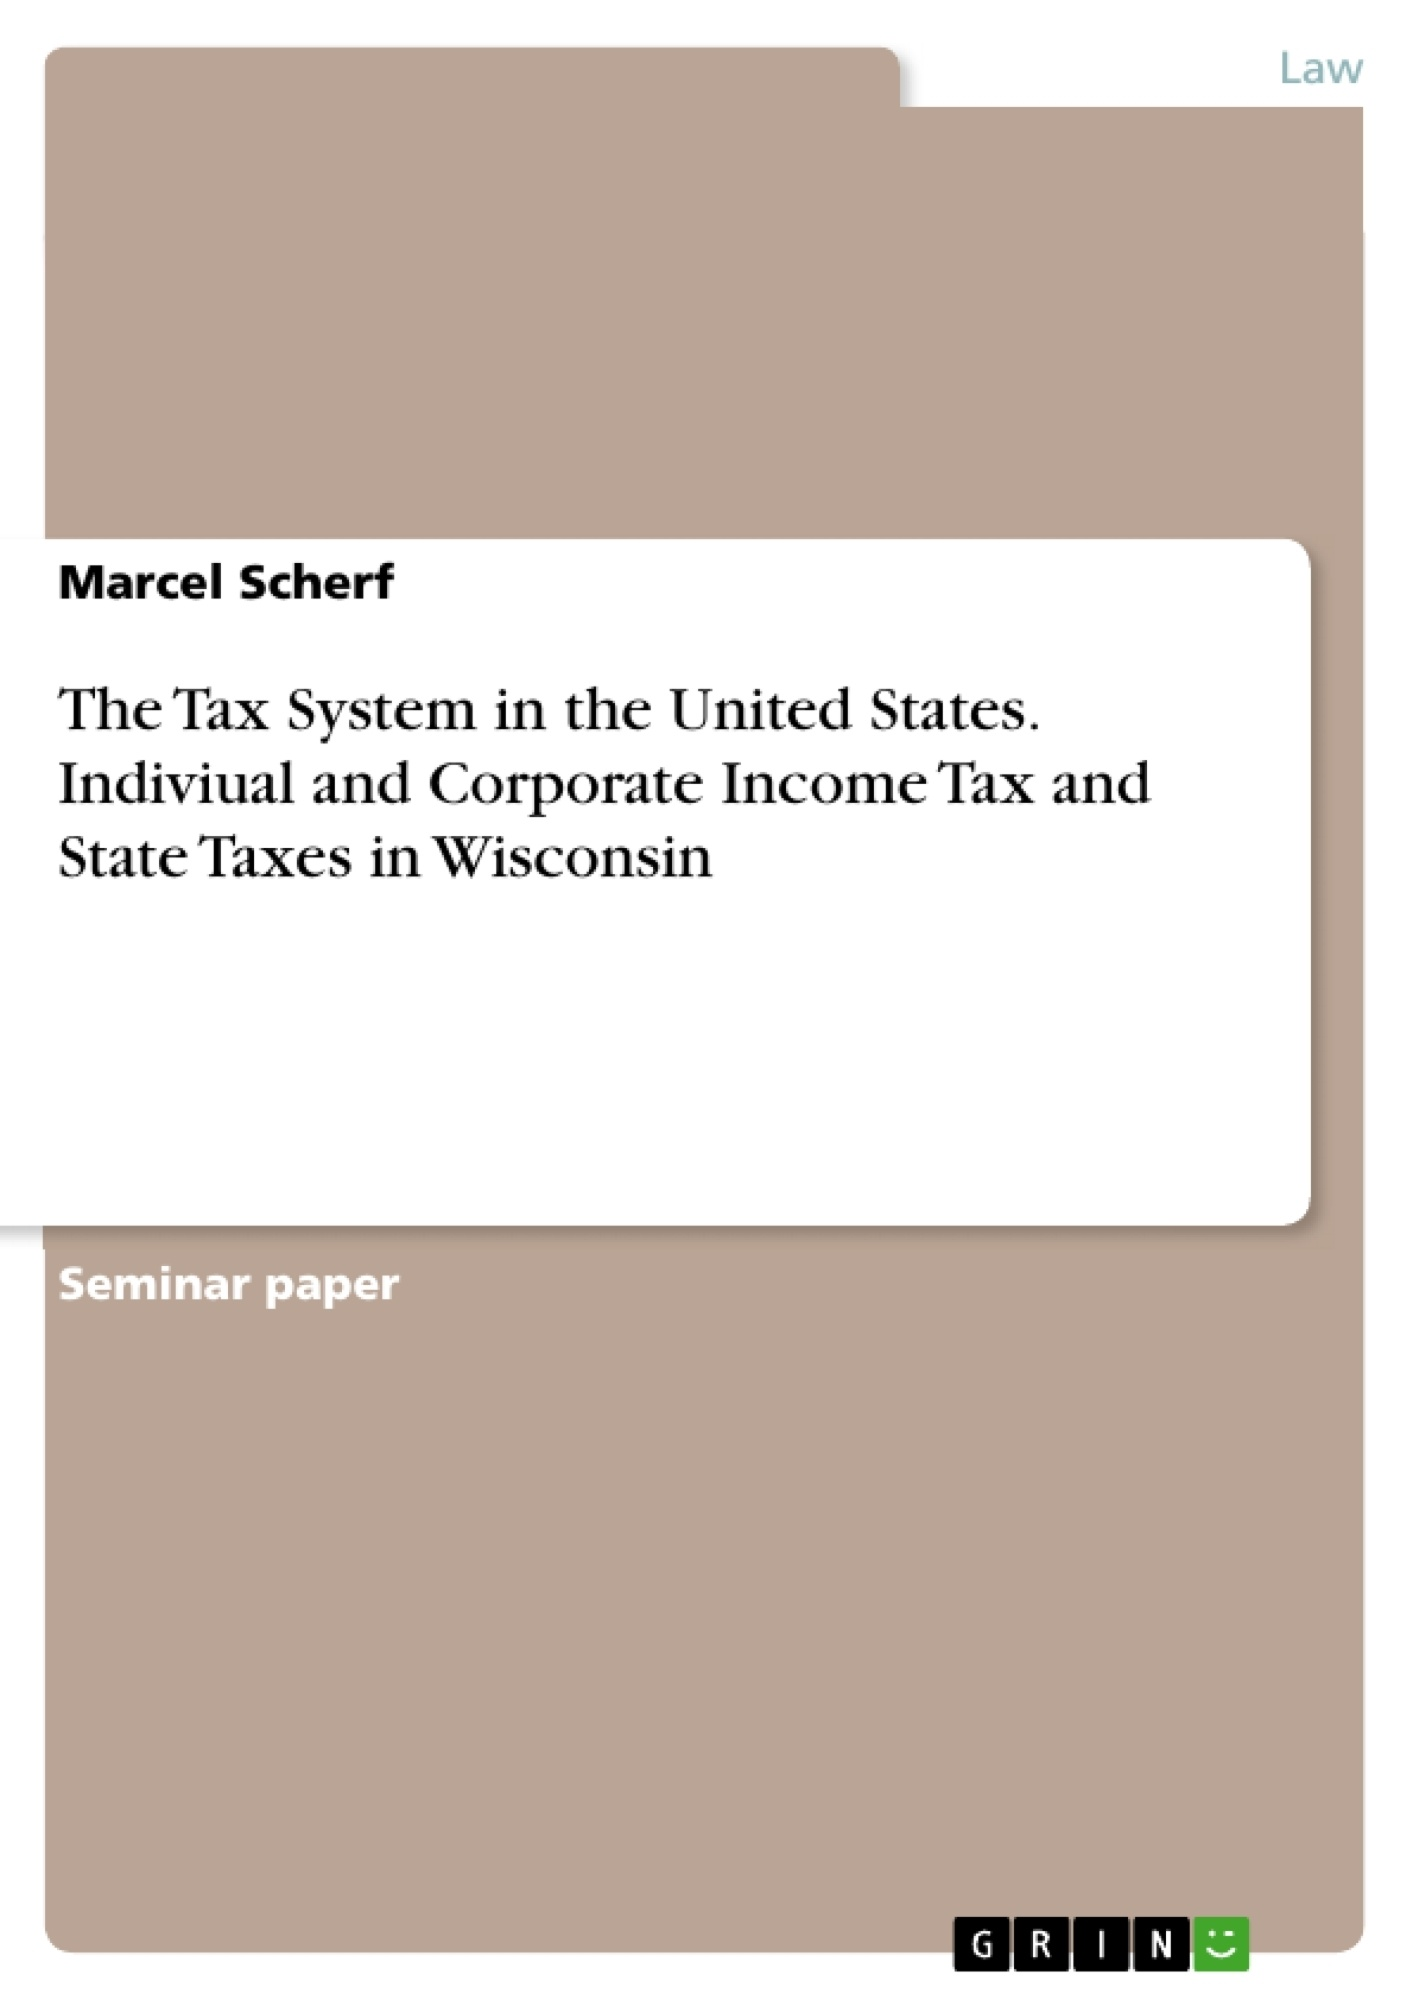 """united states income tax essay Abstract this article examines some of the background to the 1954 japan-united states income tax treaty from a historical perspective japanese domestic law developed the """"source"""" of income concept and implemented a foreign tax credit system during the three years of treaty negotiations."""